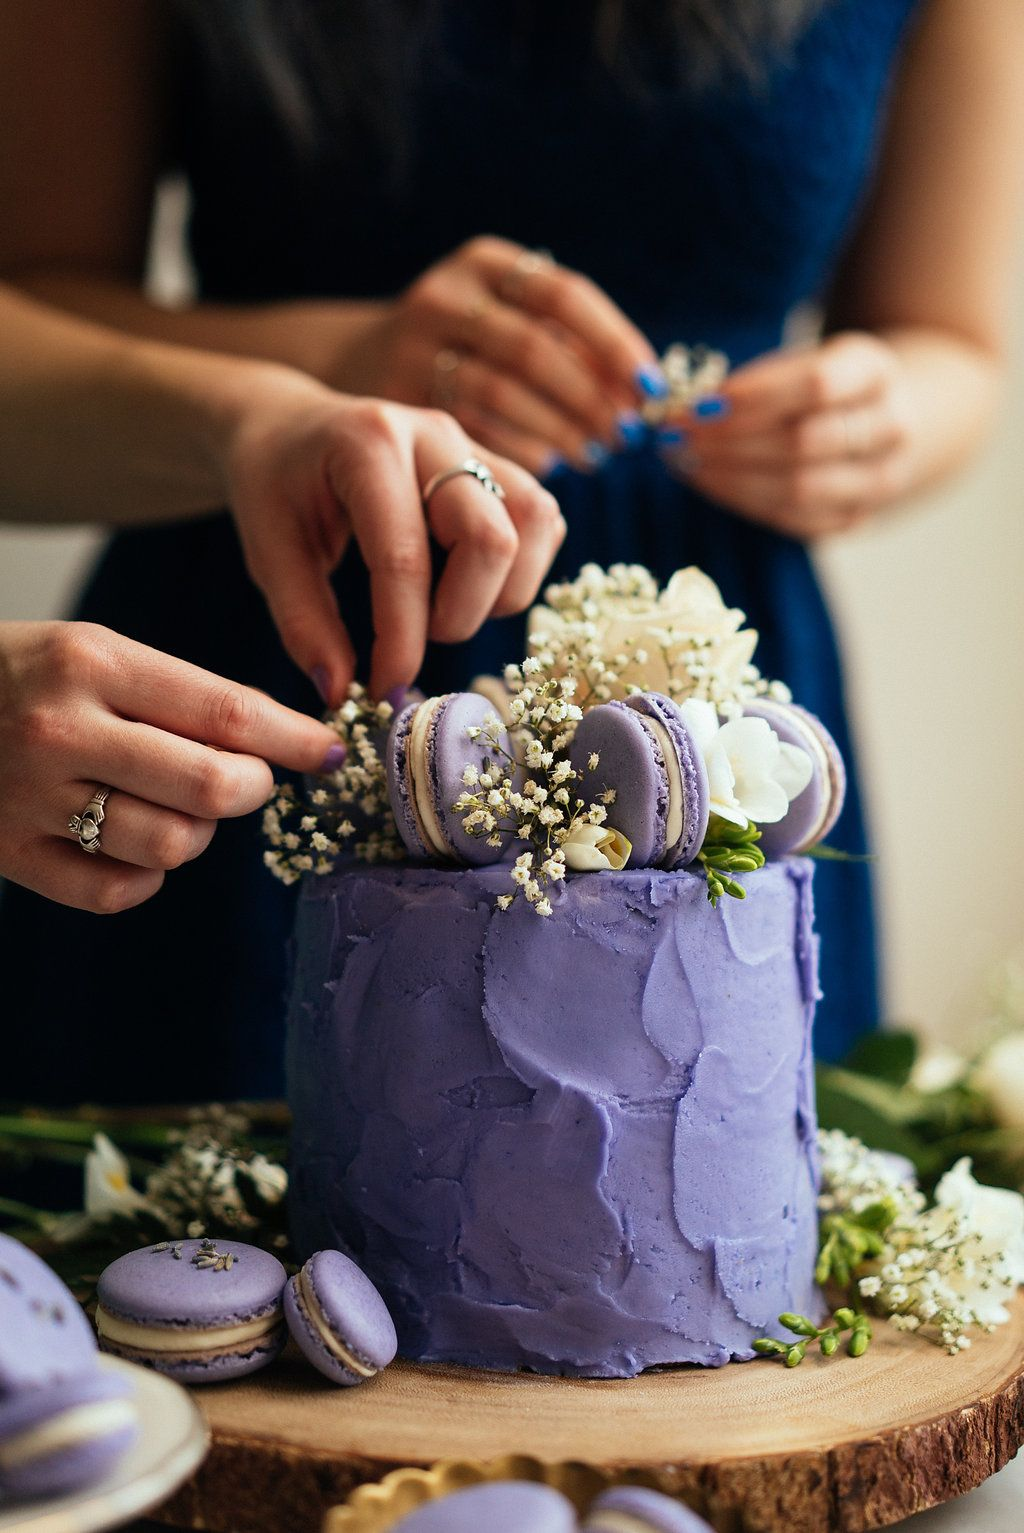 Lavender Earl Grey Cake With Lavender Macarons